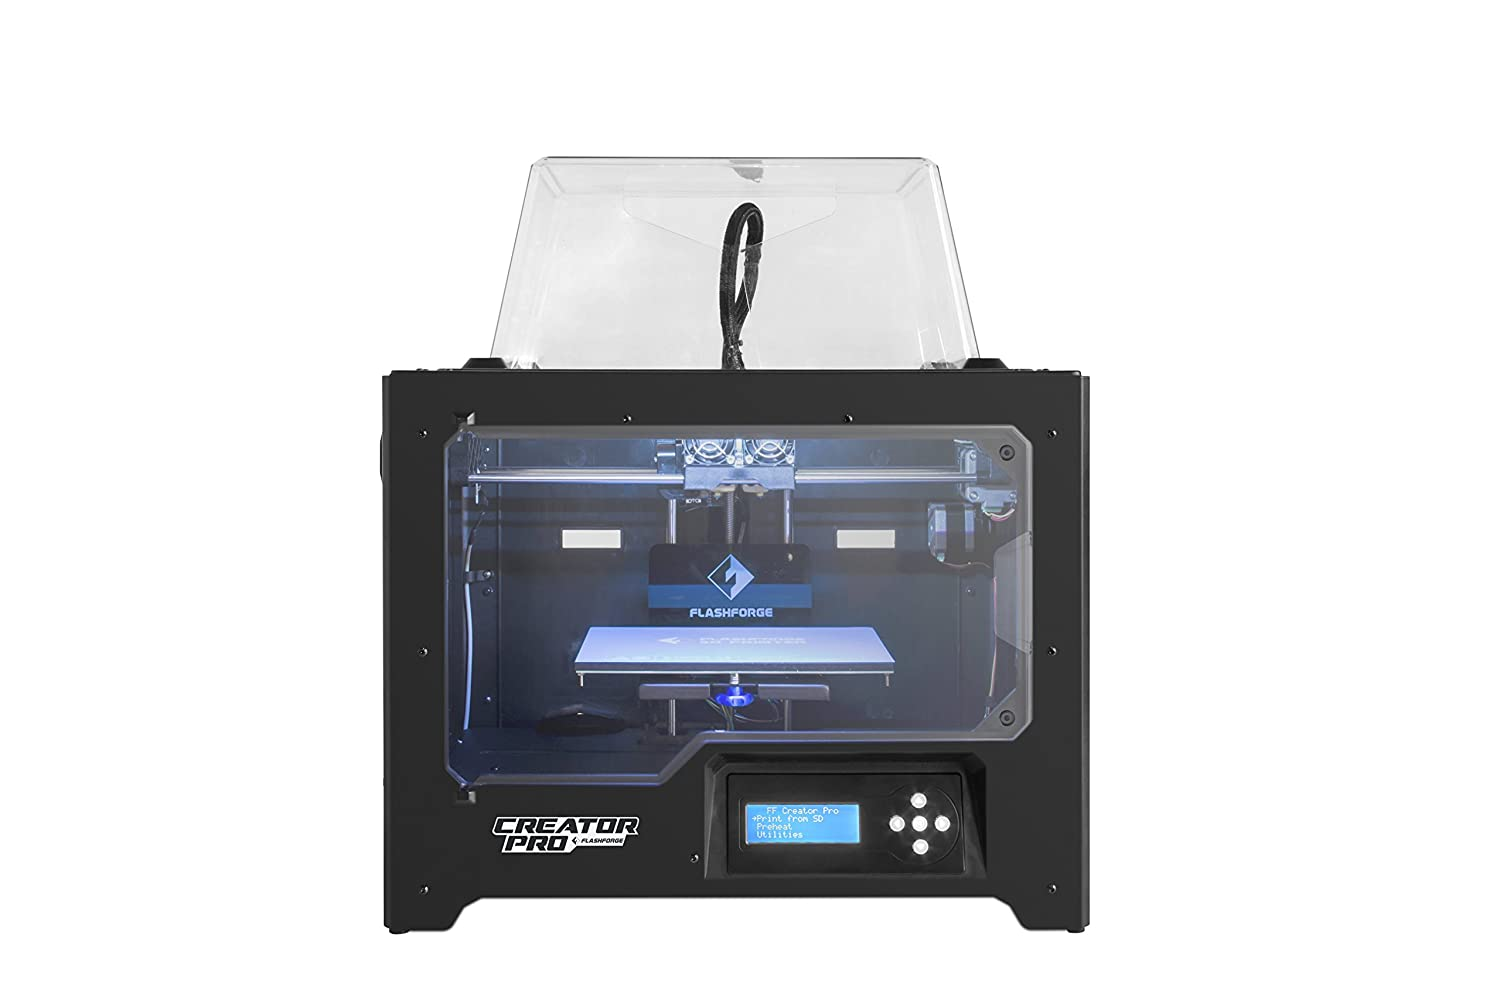 71suHBI3a7L._SL1500_ new flashforge creator pro 3d printer with upgraded design amazon  at eliteediting.co